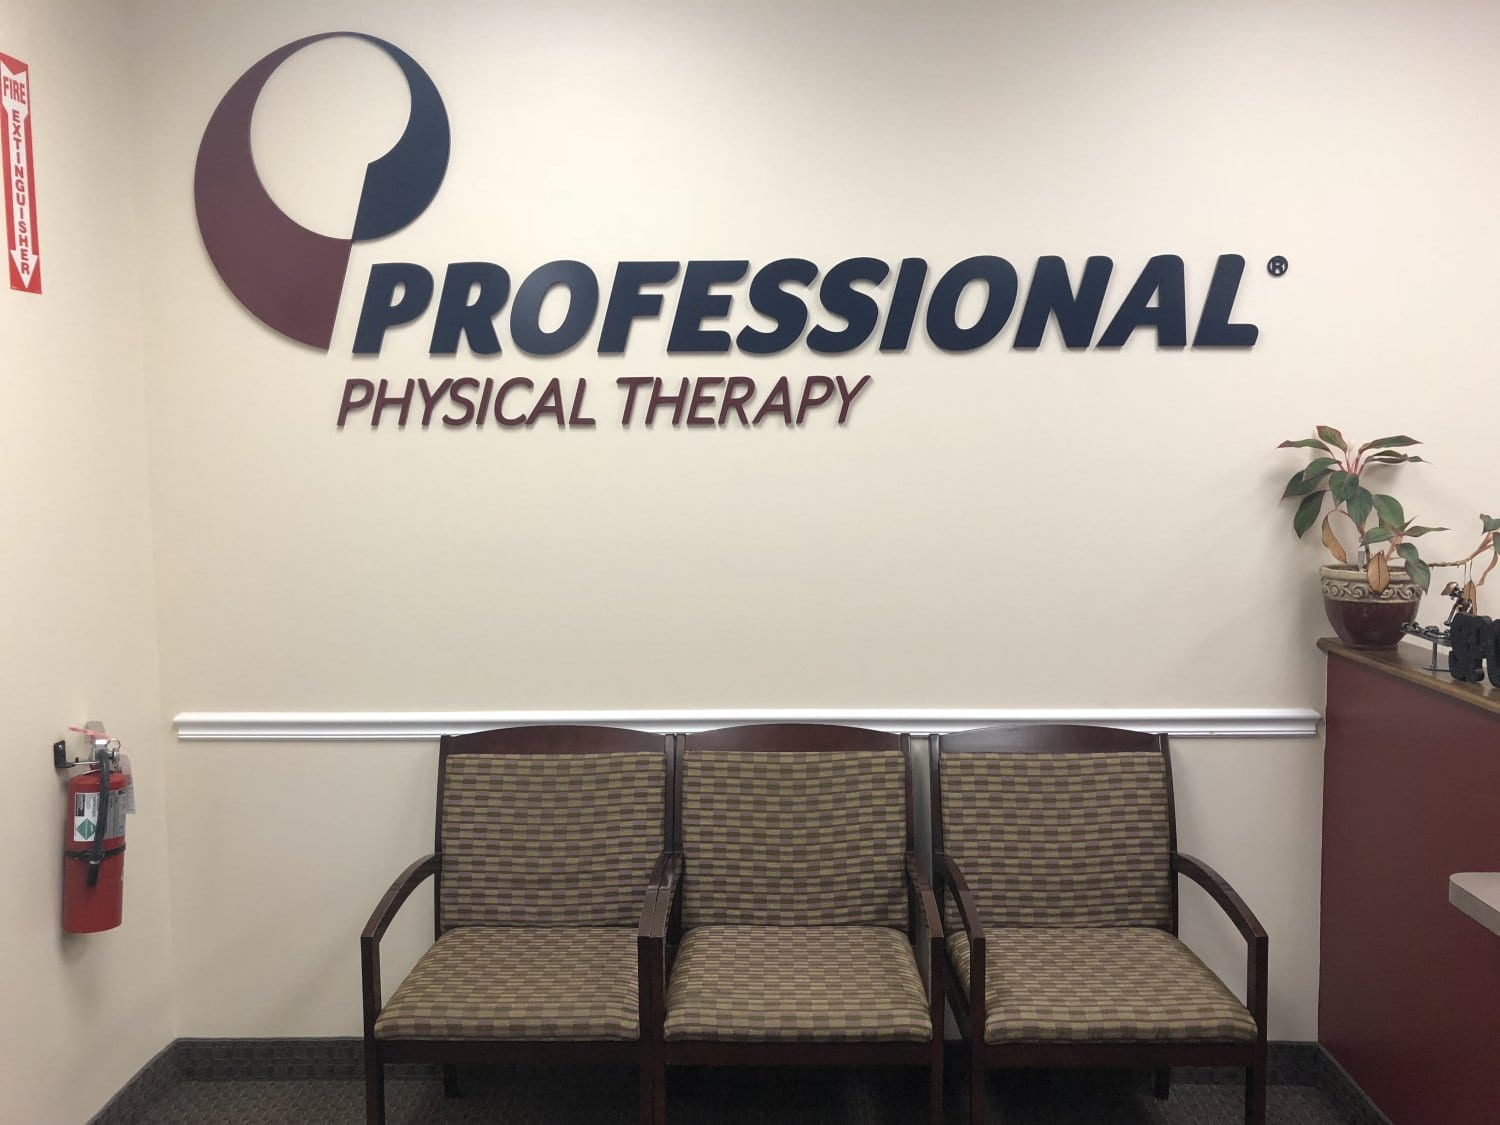 An image of the Professional Physical Therapy sign up on our wall in our waiting area at our clinic in Hazlet, New Jersey.